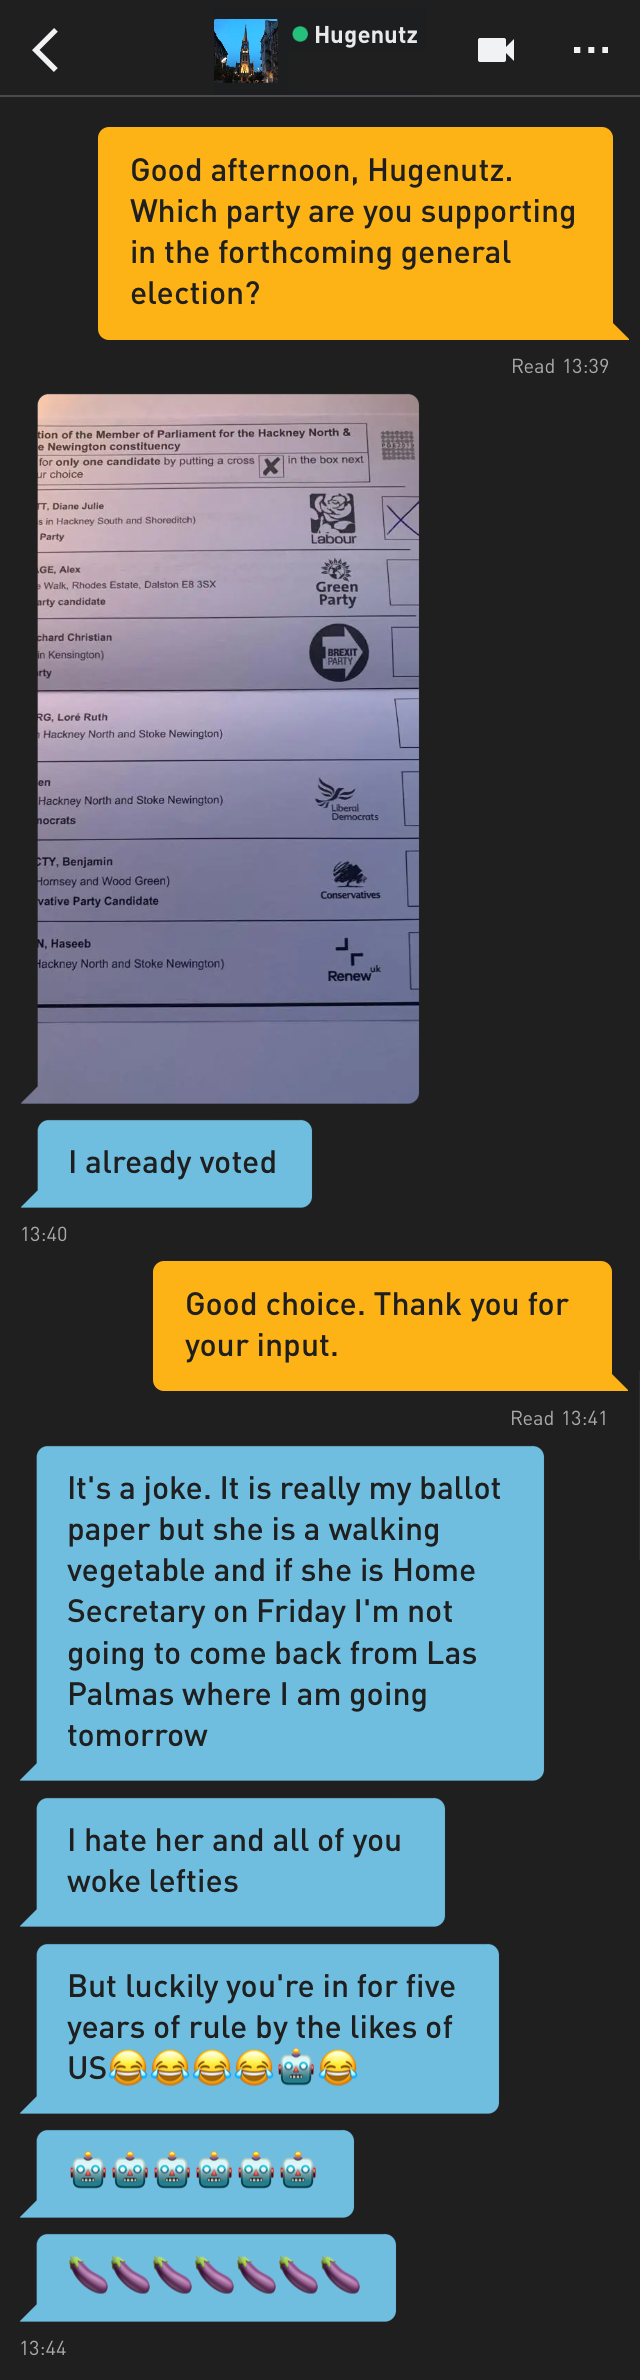 Me: Good afternoon, Hugenutz. Which party are you supporting in the forthcoming general election? Hugenutz: [a photo of his ballot paper, with a cross next to Diane Abbott of the Labour Party] Hugenutz: I already voted Me: Good choice. Thank you for your input. Hugenutz: It's a joke. It is really my ballot paper but she is a walking vegetable and if she is Home Secretary on Friday I'm not going to come back from Las Palmas where I am going tomorrow Hugenutz: I hate her and all of you woke lefties Hugenutz: But luckily you're in for five years of rule by the likes of US😂😂😂😂🤖😂 Hugenutz: 🤖🤖🤖🤖🤖🤖 Hugenutz: 🍆🍆🍆🍆🍆🍆🍆